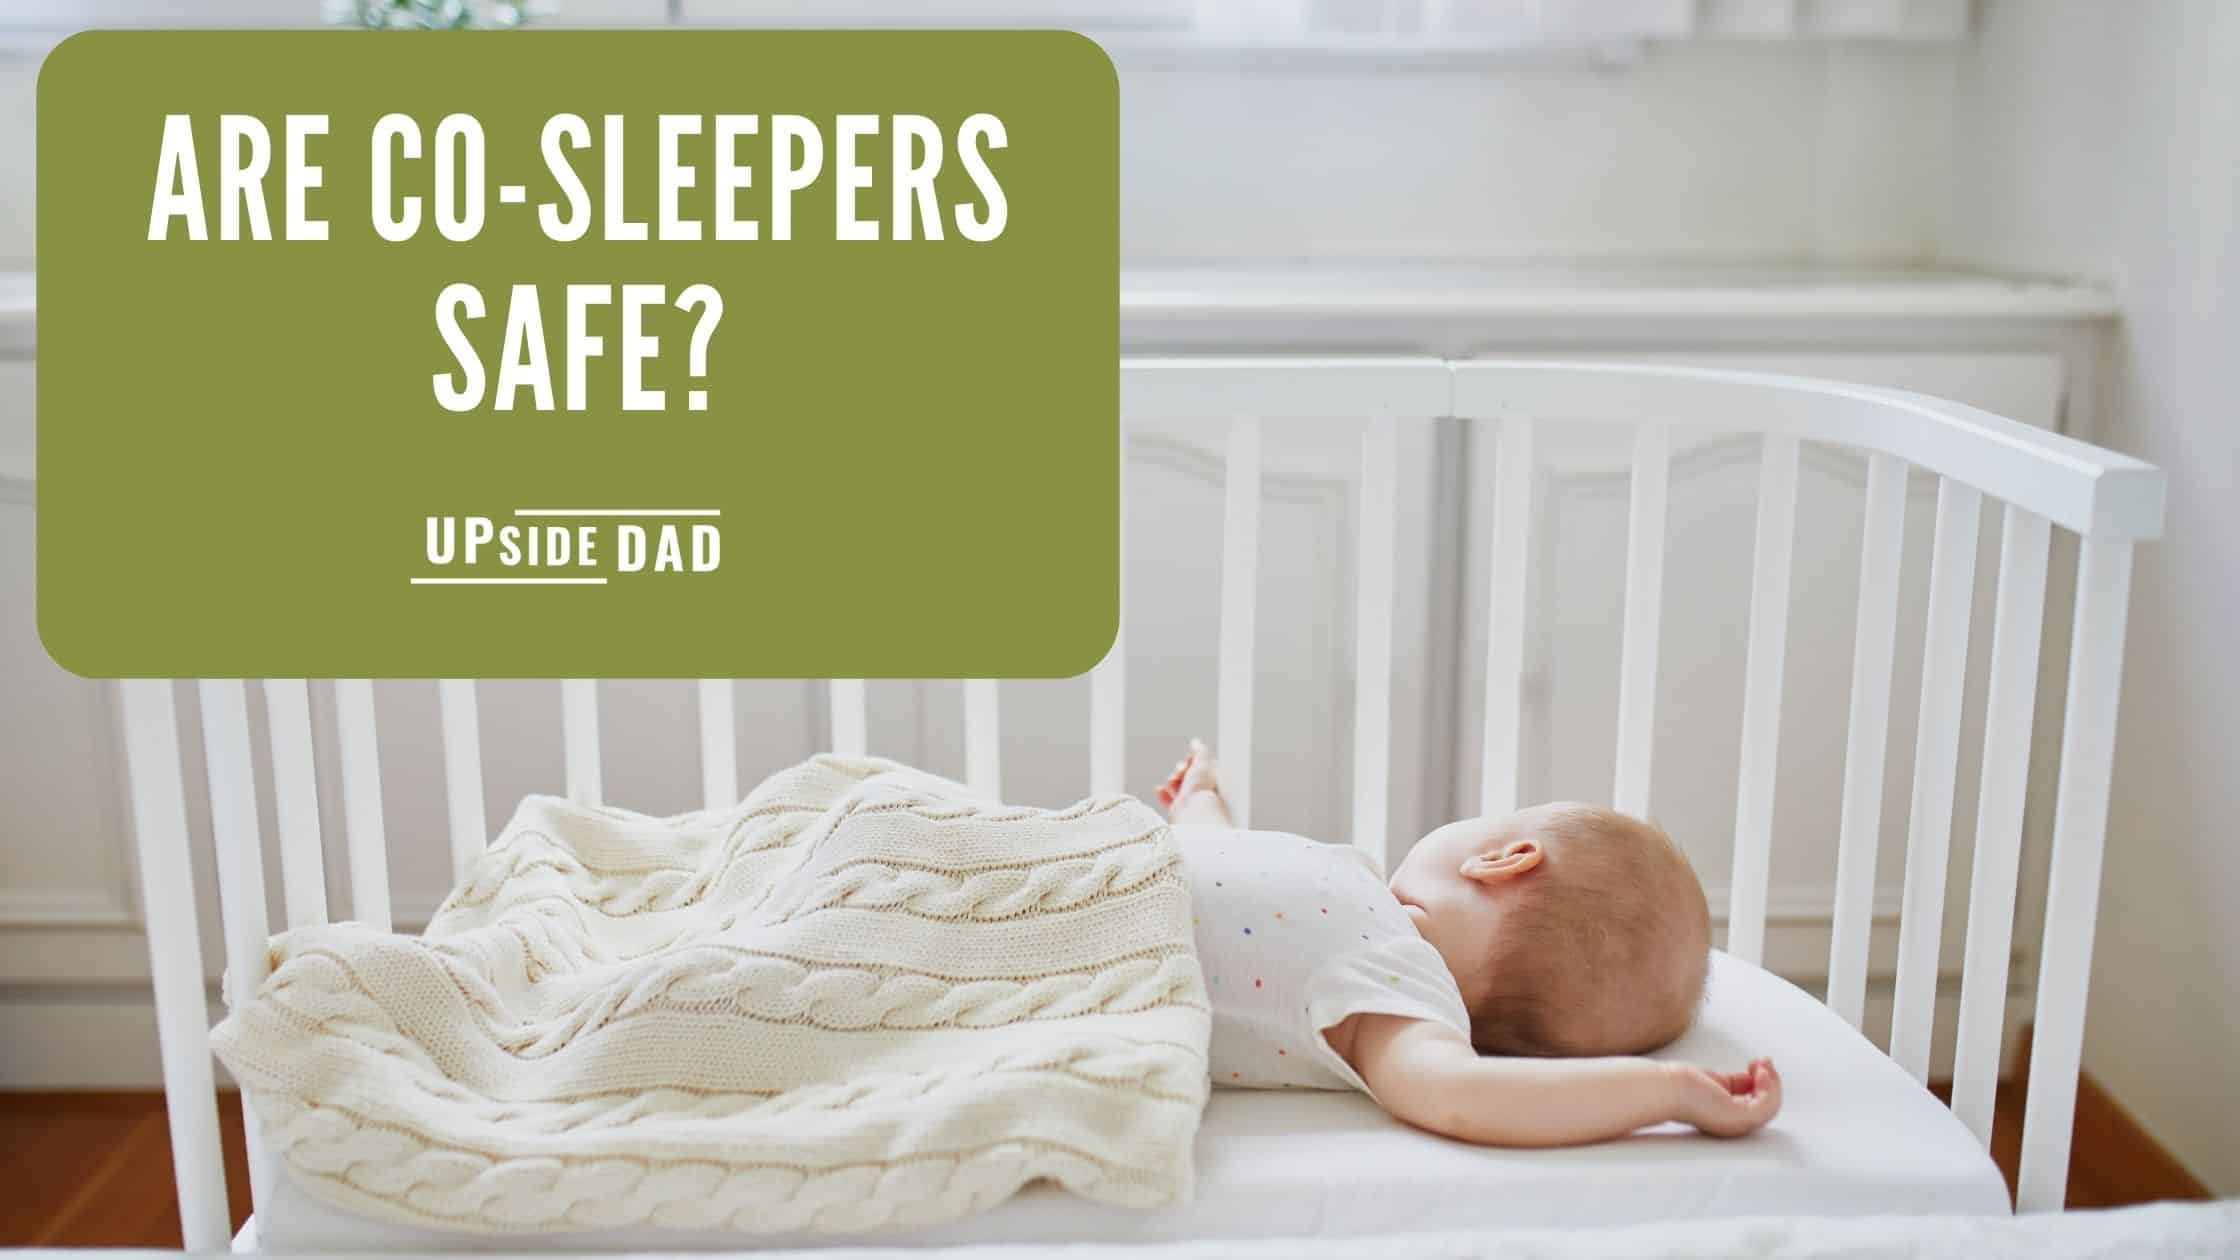 Are co-sleepers safe